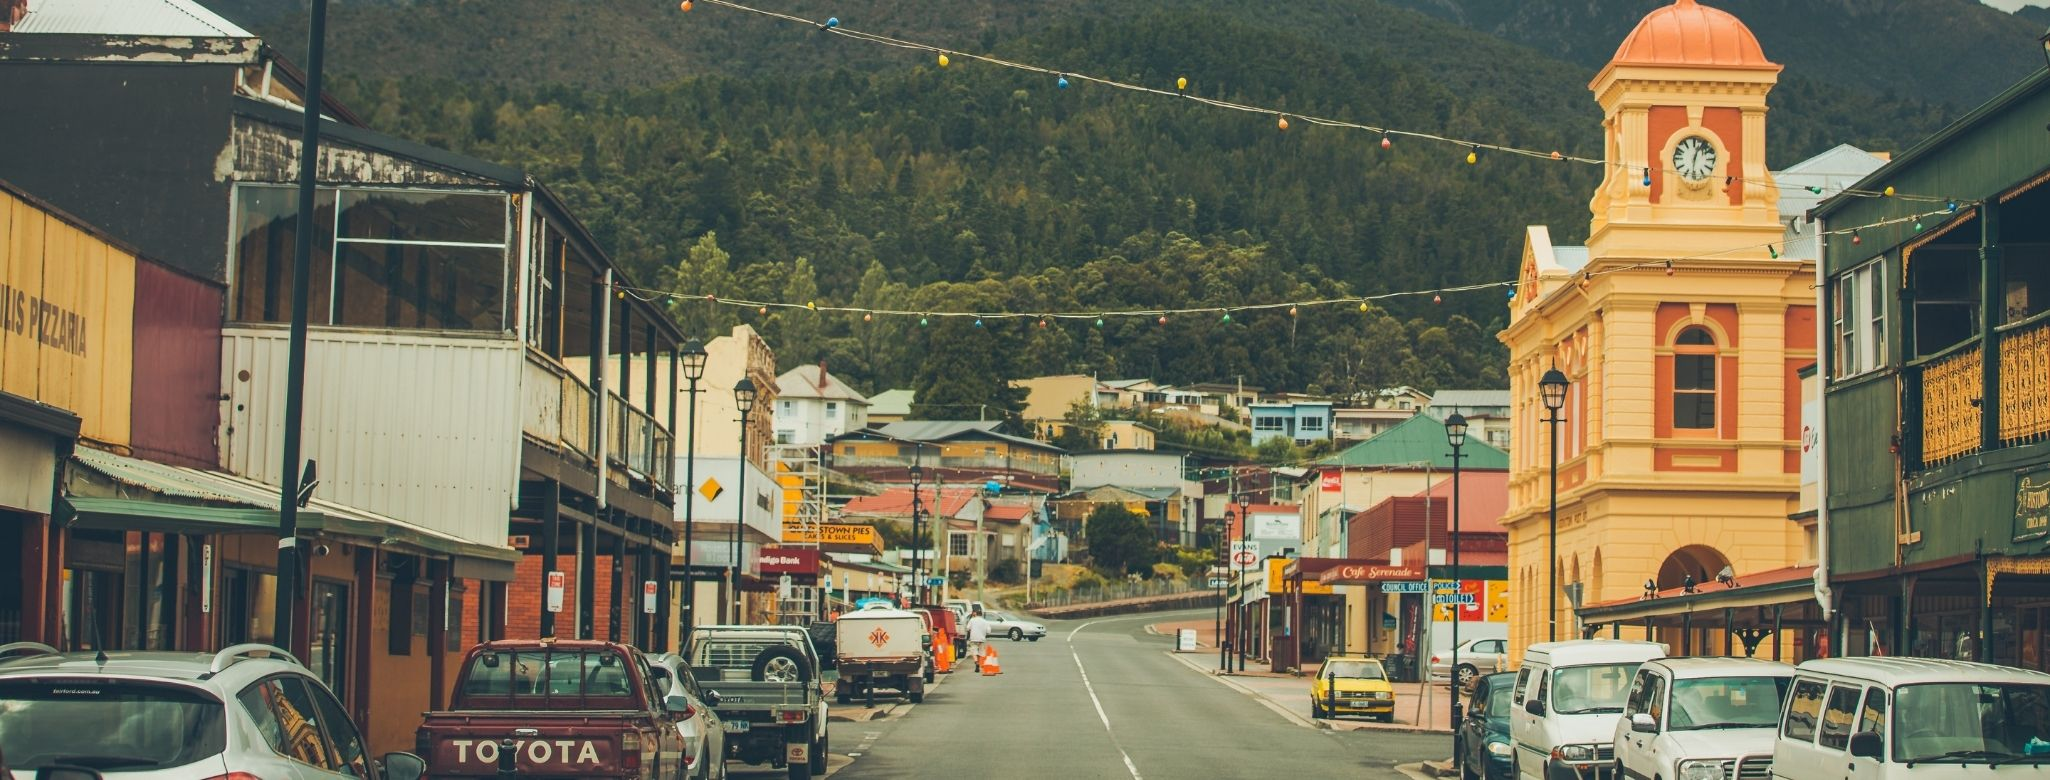 Orr Street Is The Centre Of Queenstown, An Historic Mining Town In Tasmania's Western Wilderness Area